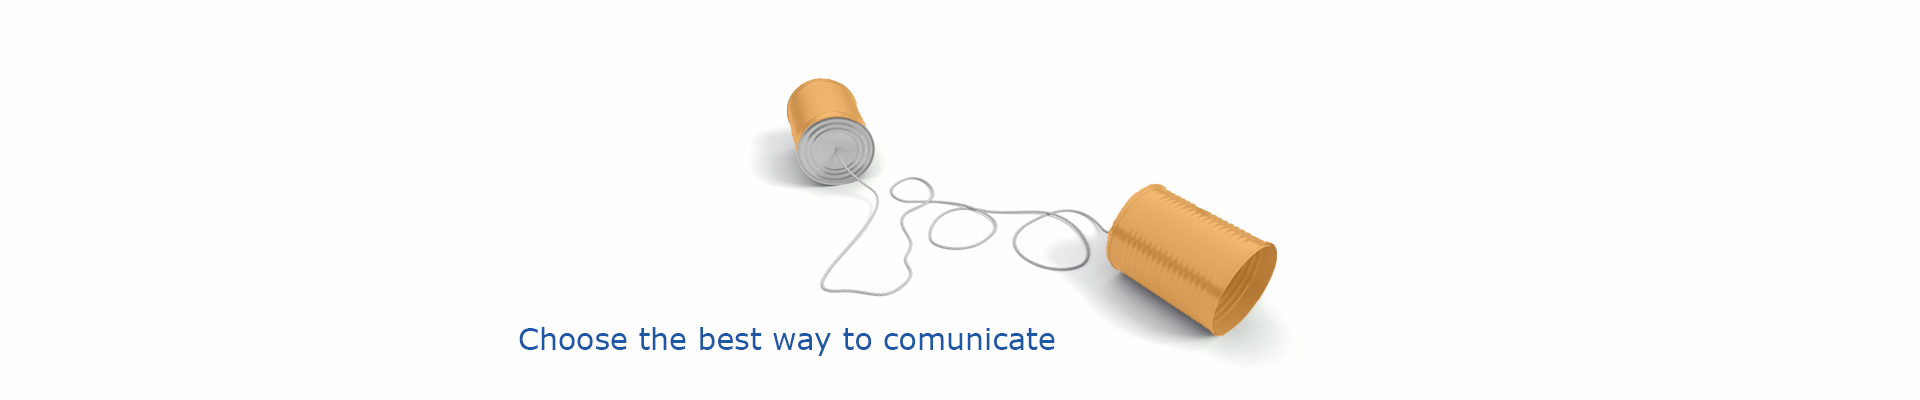 Business Communication - London Systems, IT for London